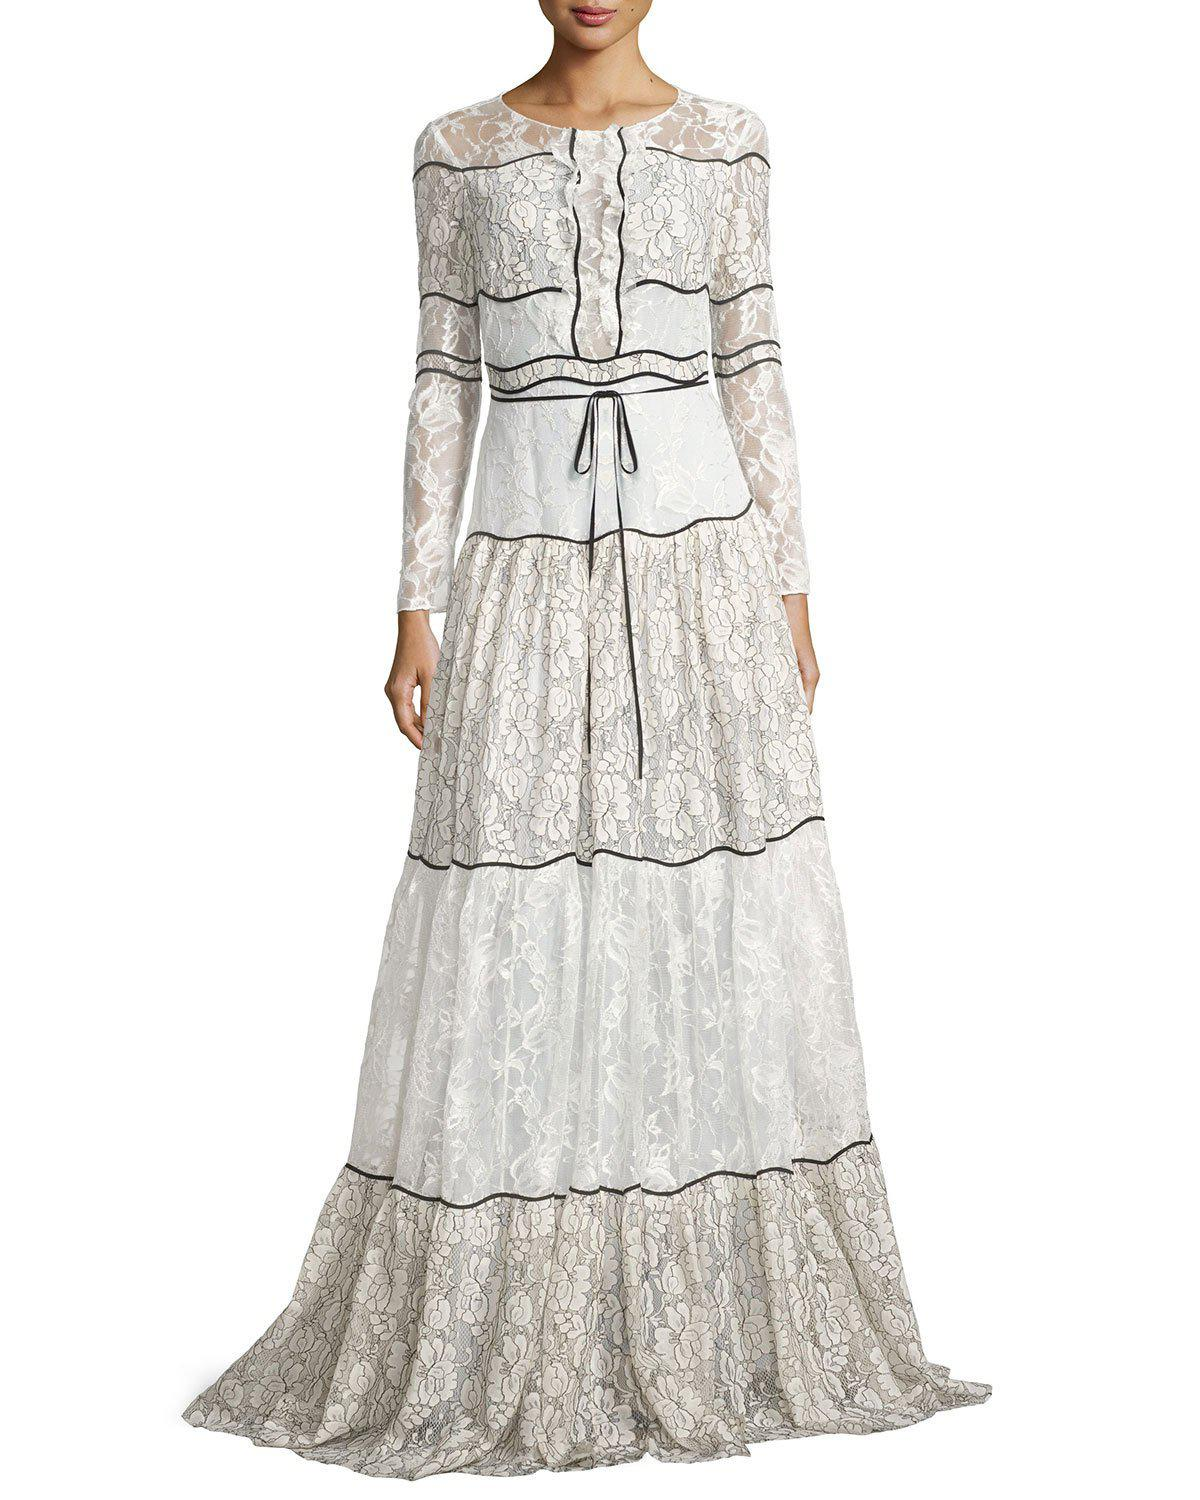 87bb5e09c468 Sachin & Babi Sara Long-sleeve Paneled Lace Gown in White - Lyst